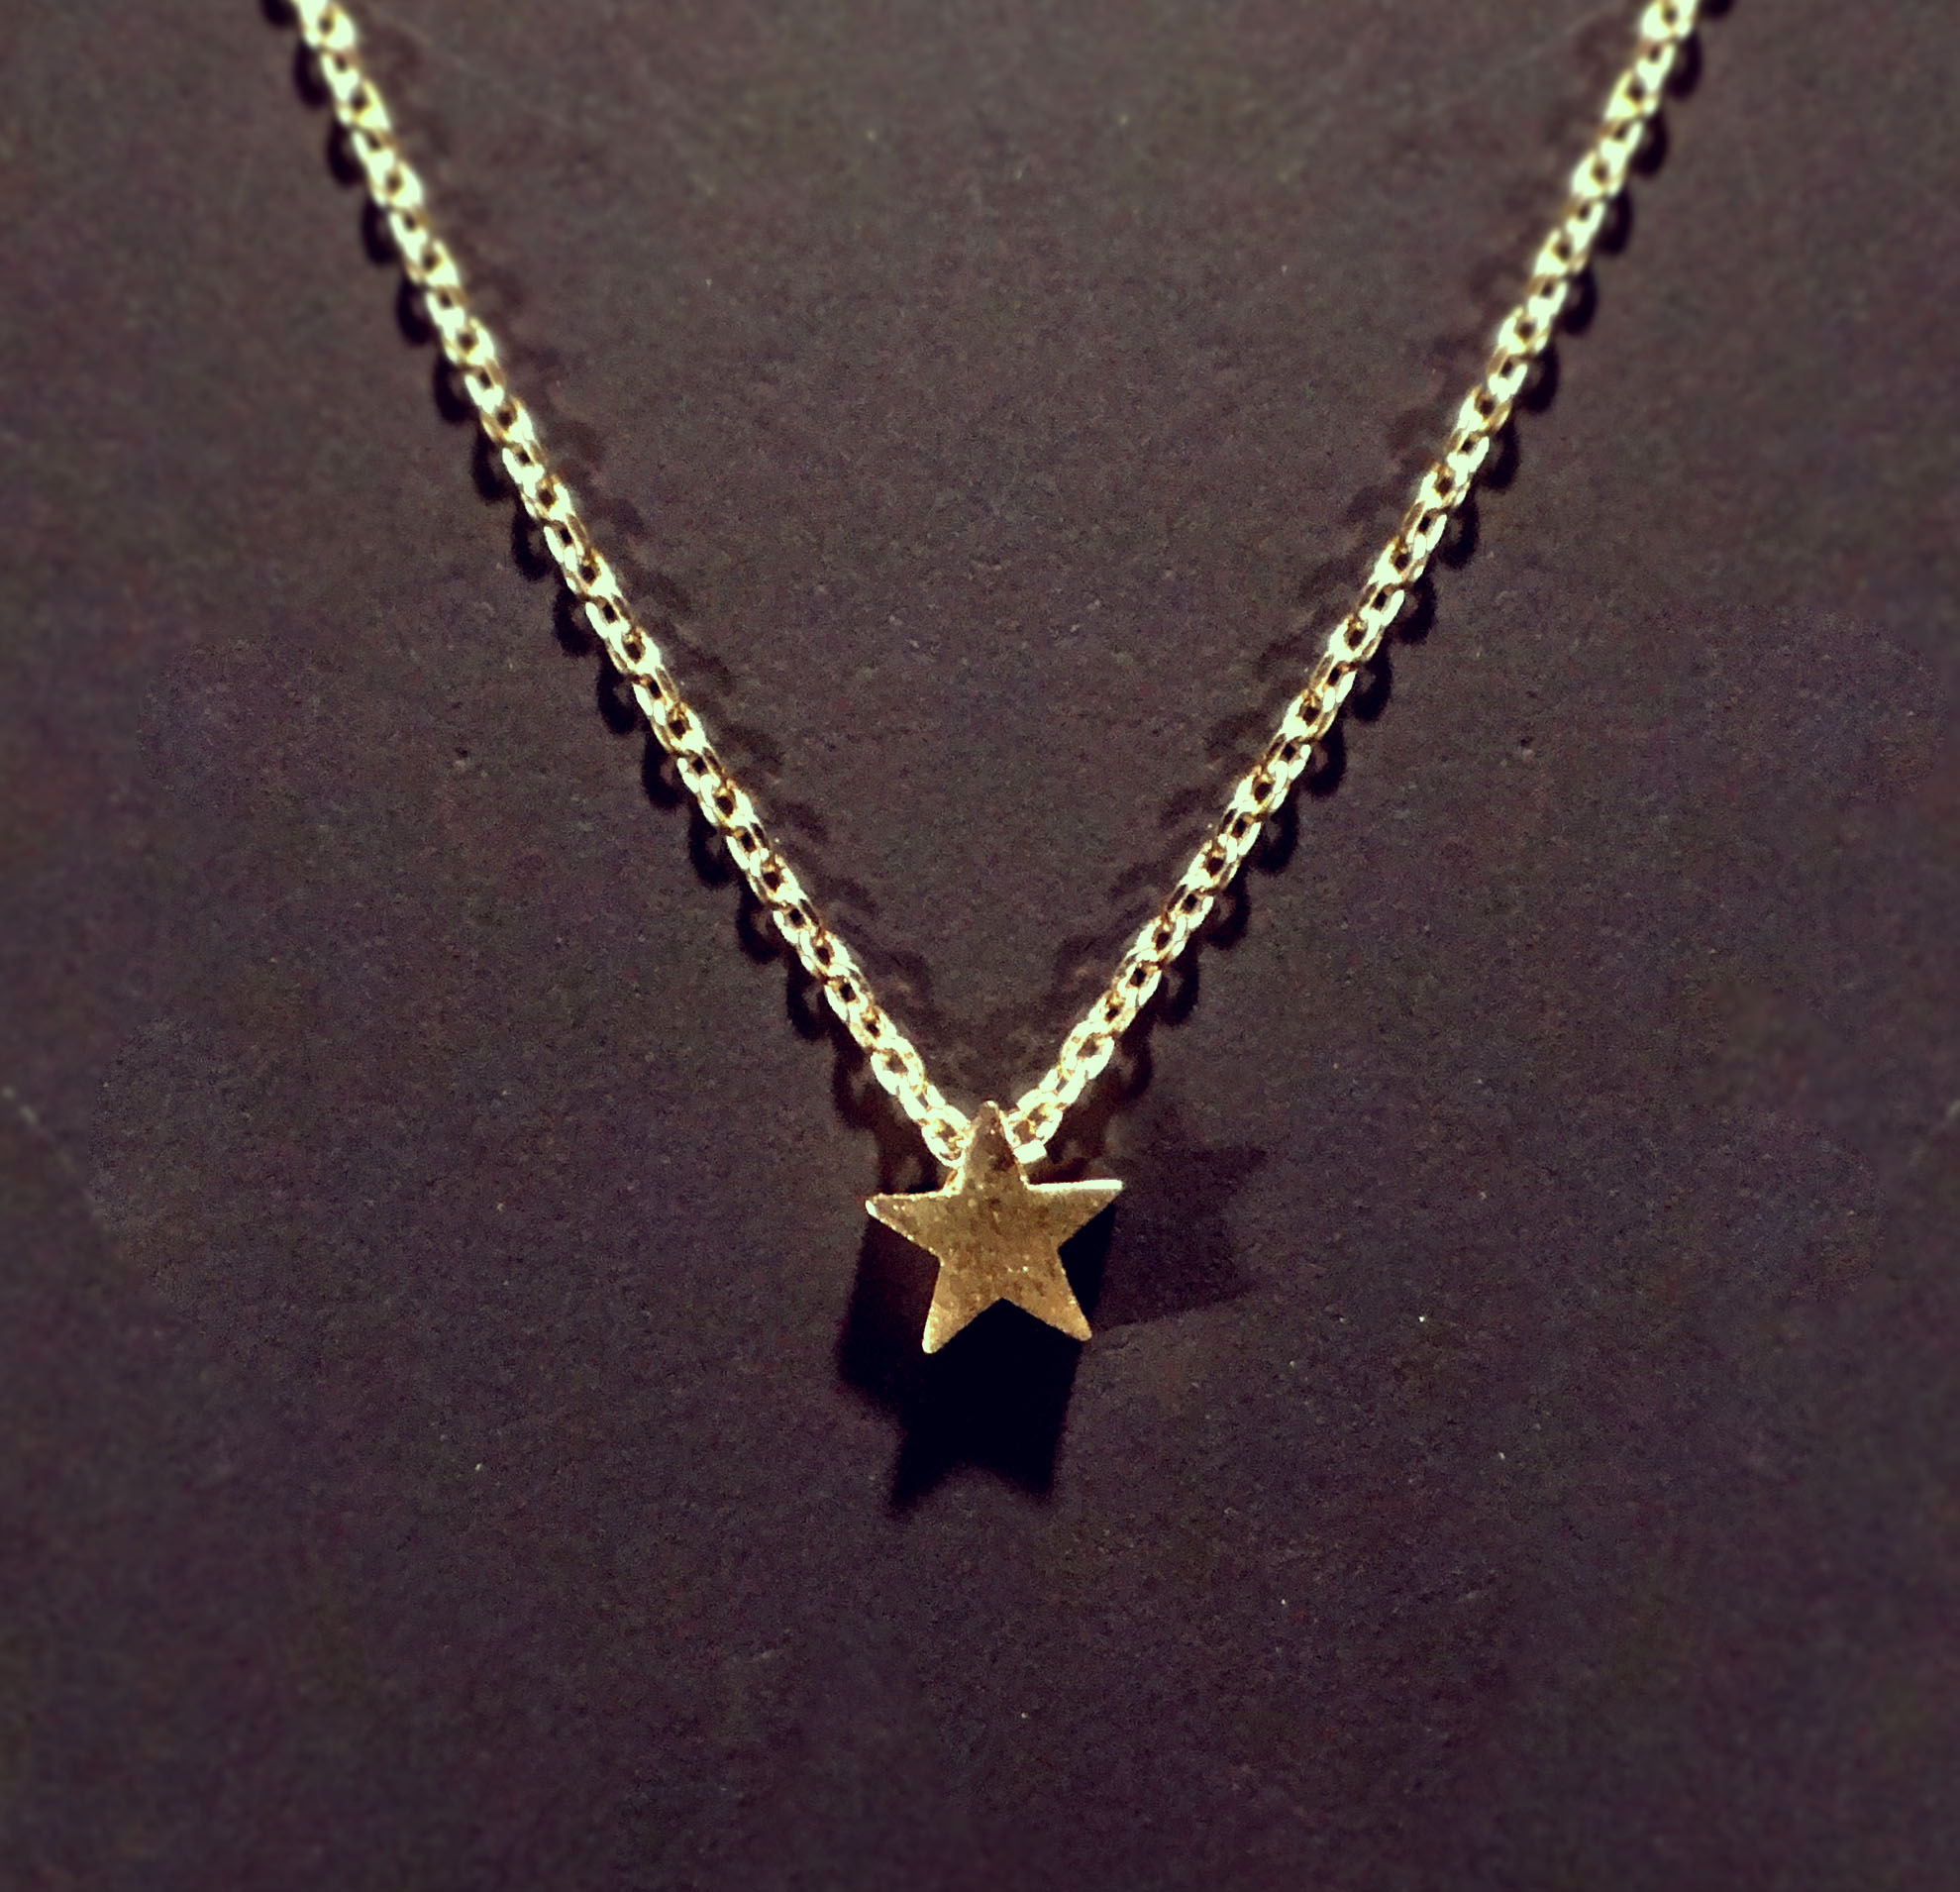 necklaces necklacealternative mia muru wear necklace neck star boutique jewellery tiny bella gold